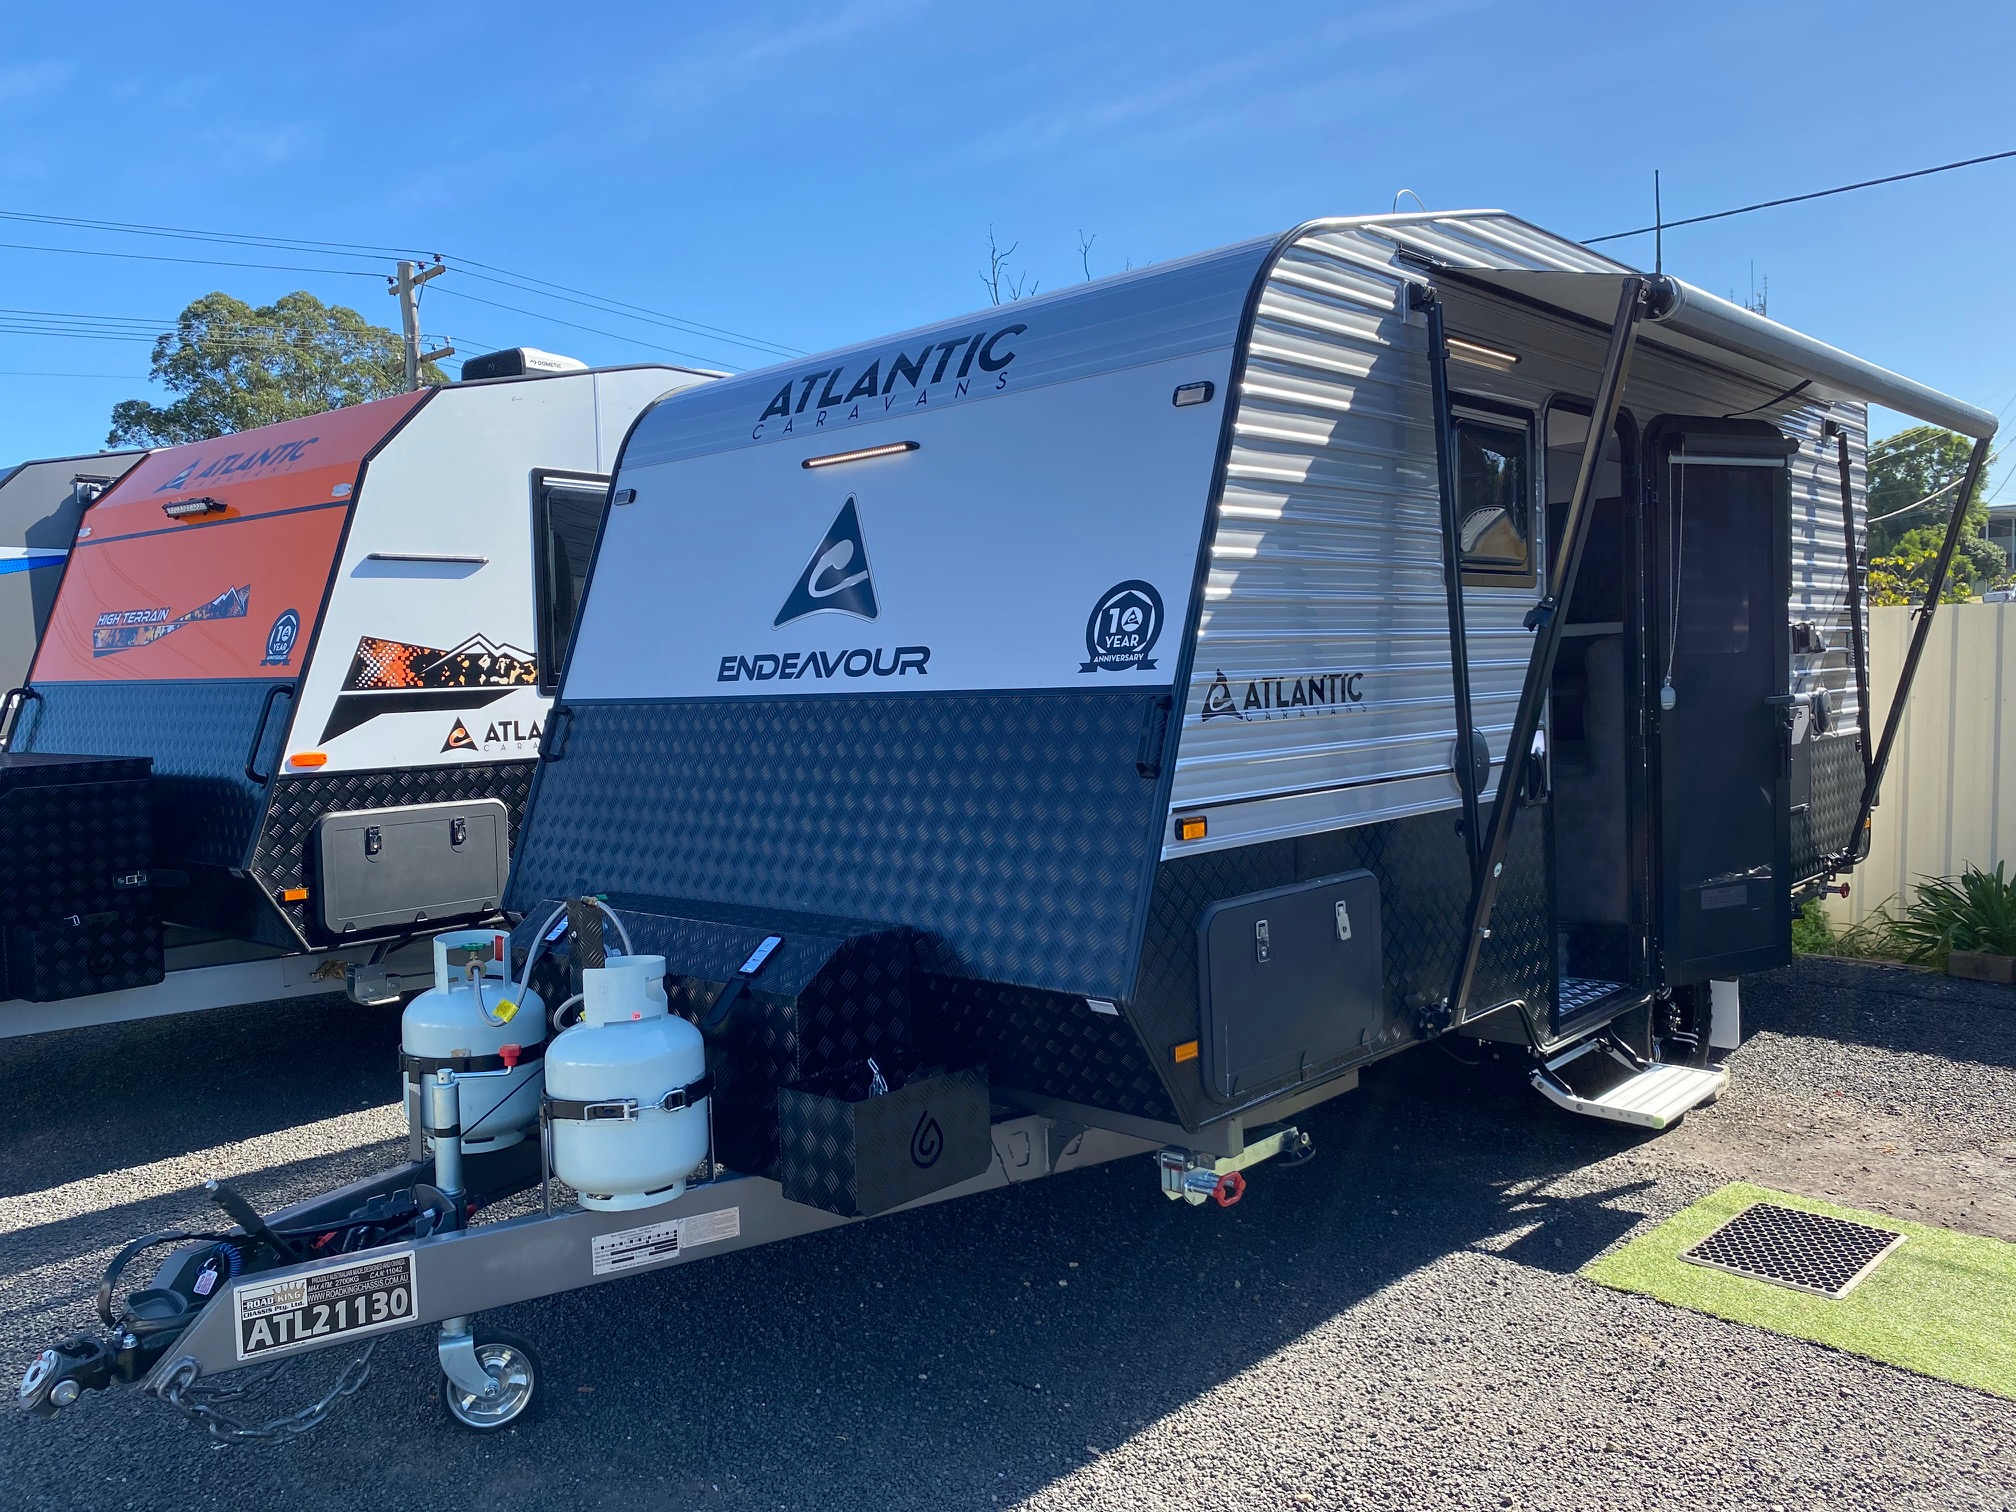 2021 ATLANTIC Endeavour 16'6 Bush Pack for sale in Windsor, NSW (ATL21130)